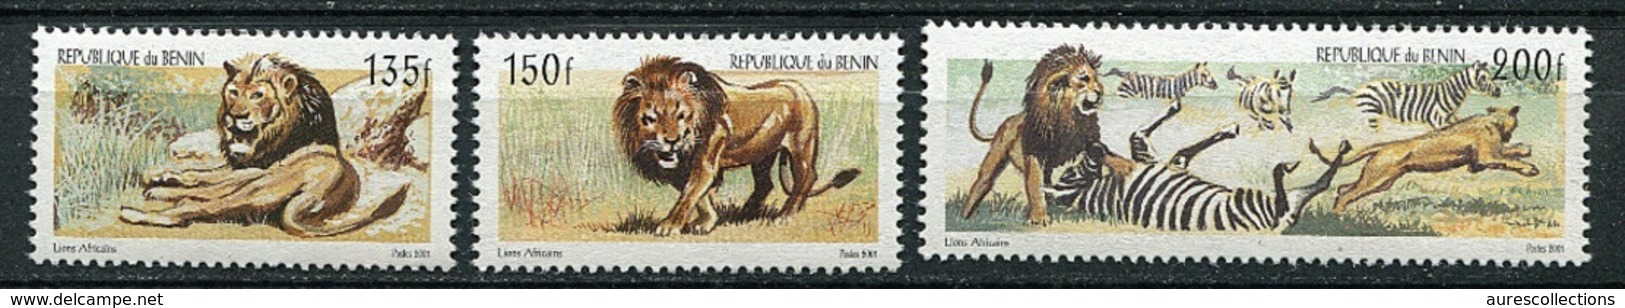 BENIN Ref. Michel N° 1324 à 1326  - Le Lion - Lions- Felins- RARE 2001 MNH With Reference Michel On Verso - Benin – Dahomey (1960-...)